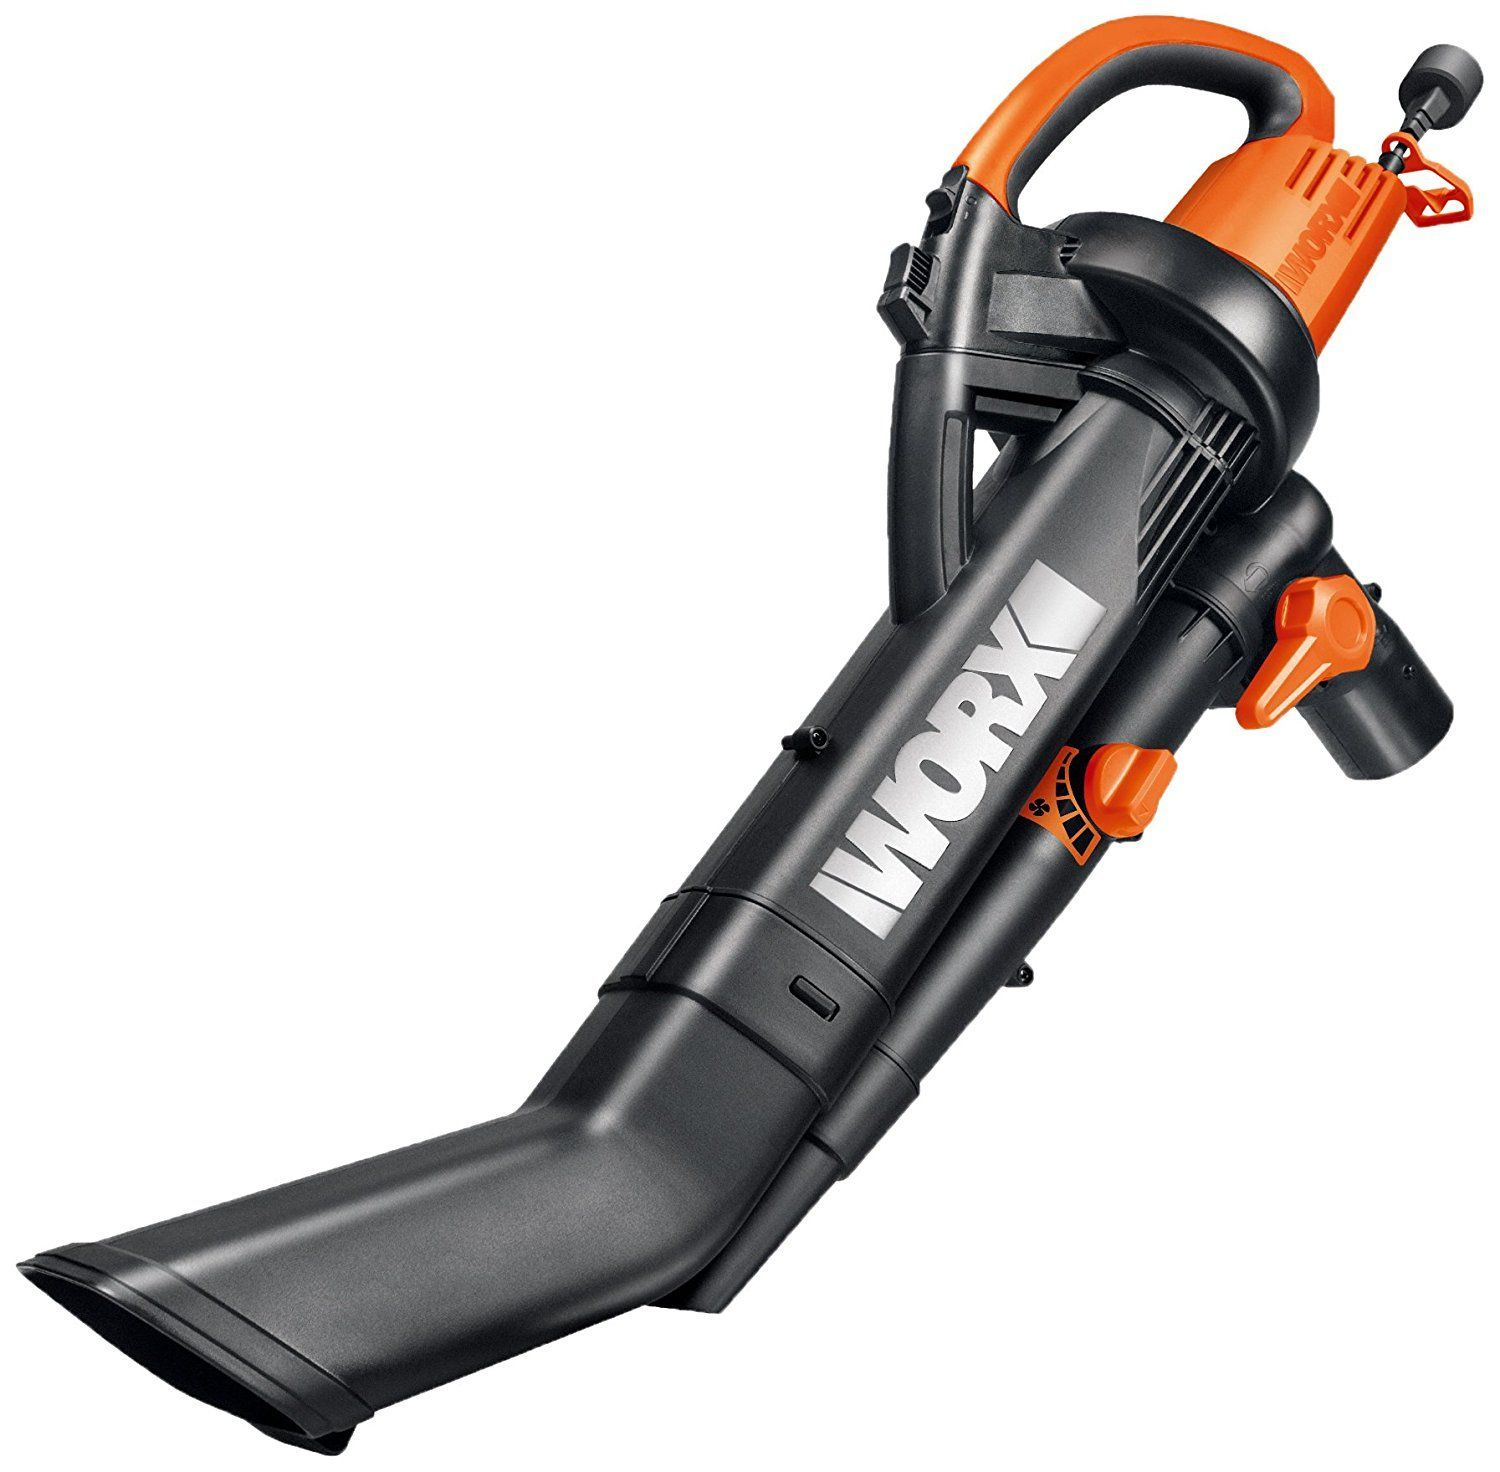 The 5 Best Leaf Vacuums For Yard Cleanup Blowers Mulching Electric Leaf Blowers